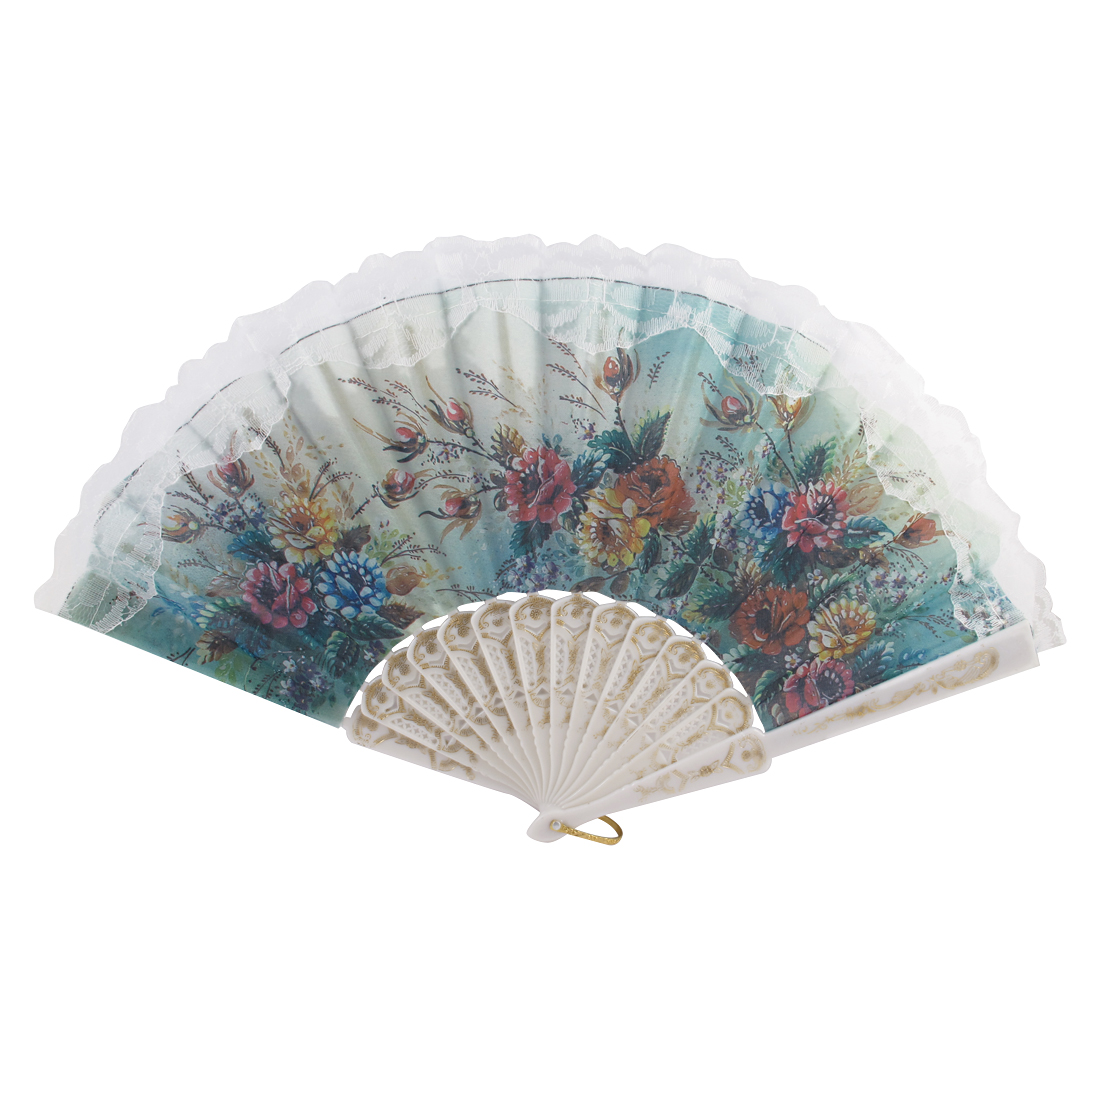 Lady Floral Pattern Lace Rim Spanish Style Hand Fan Wall Decoration